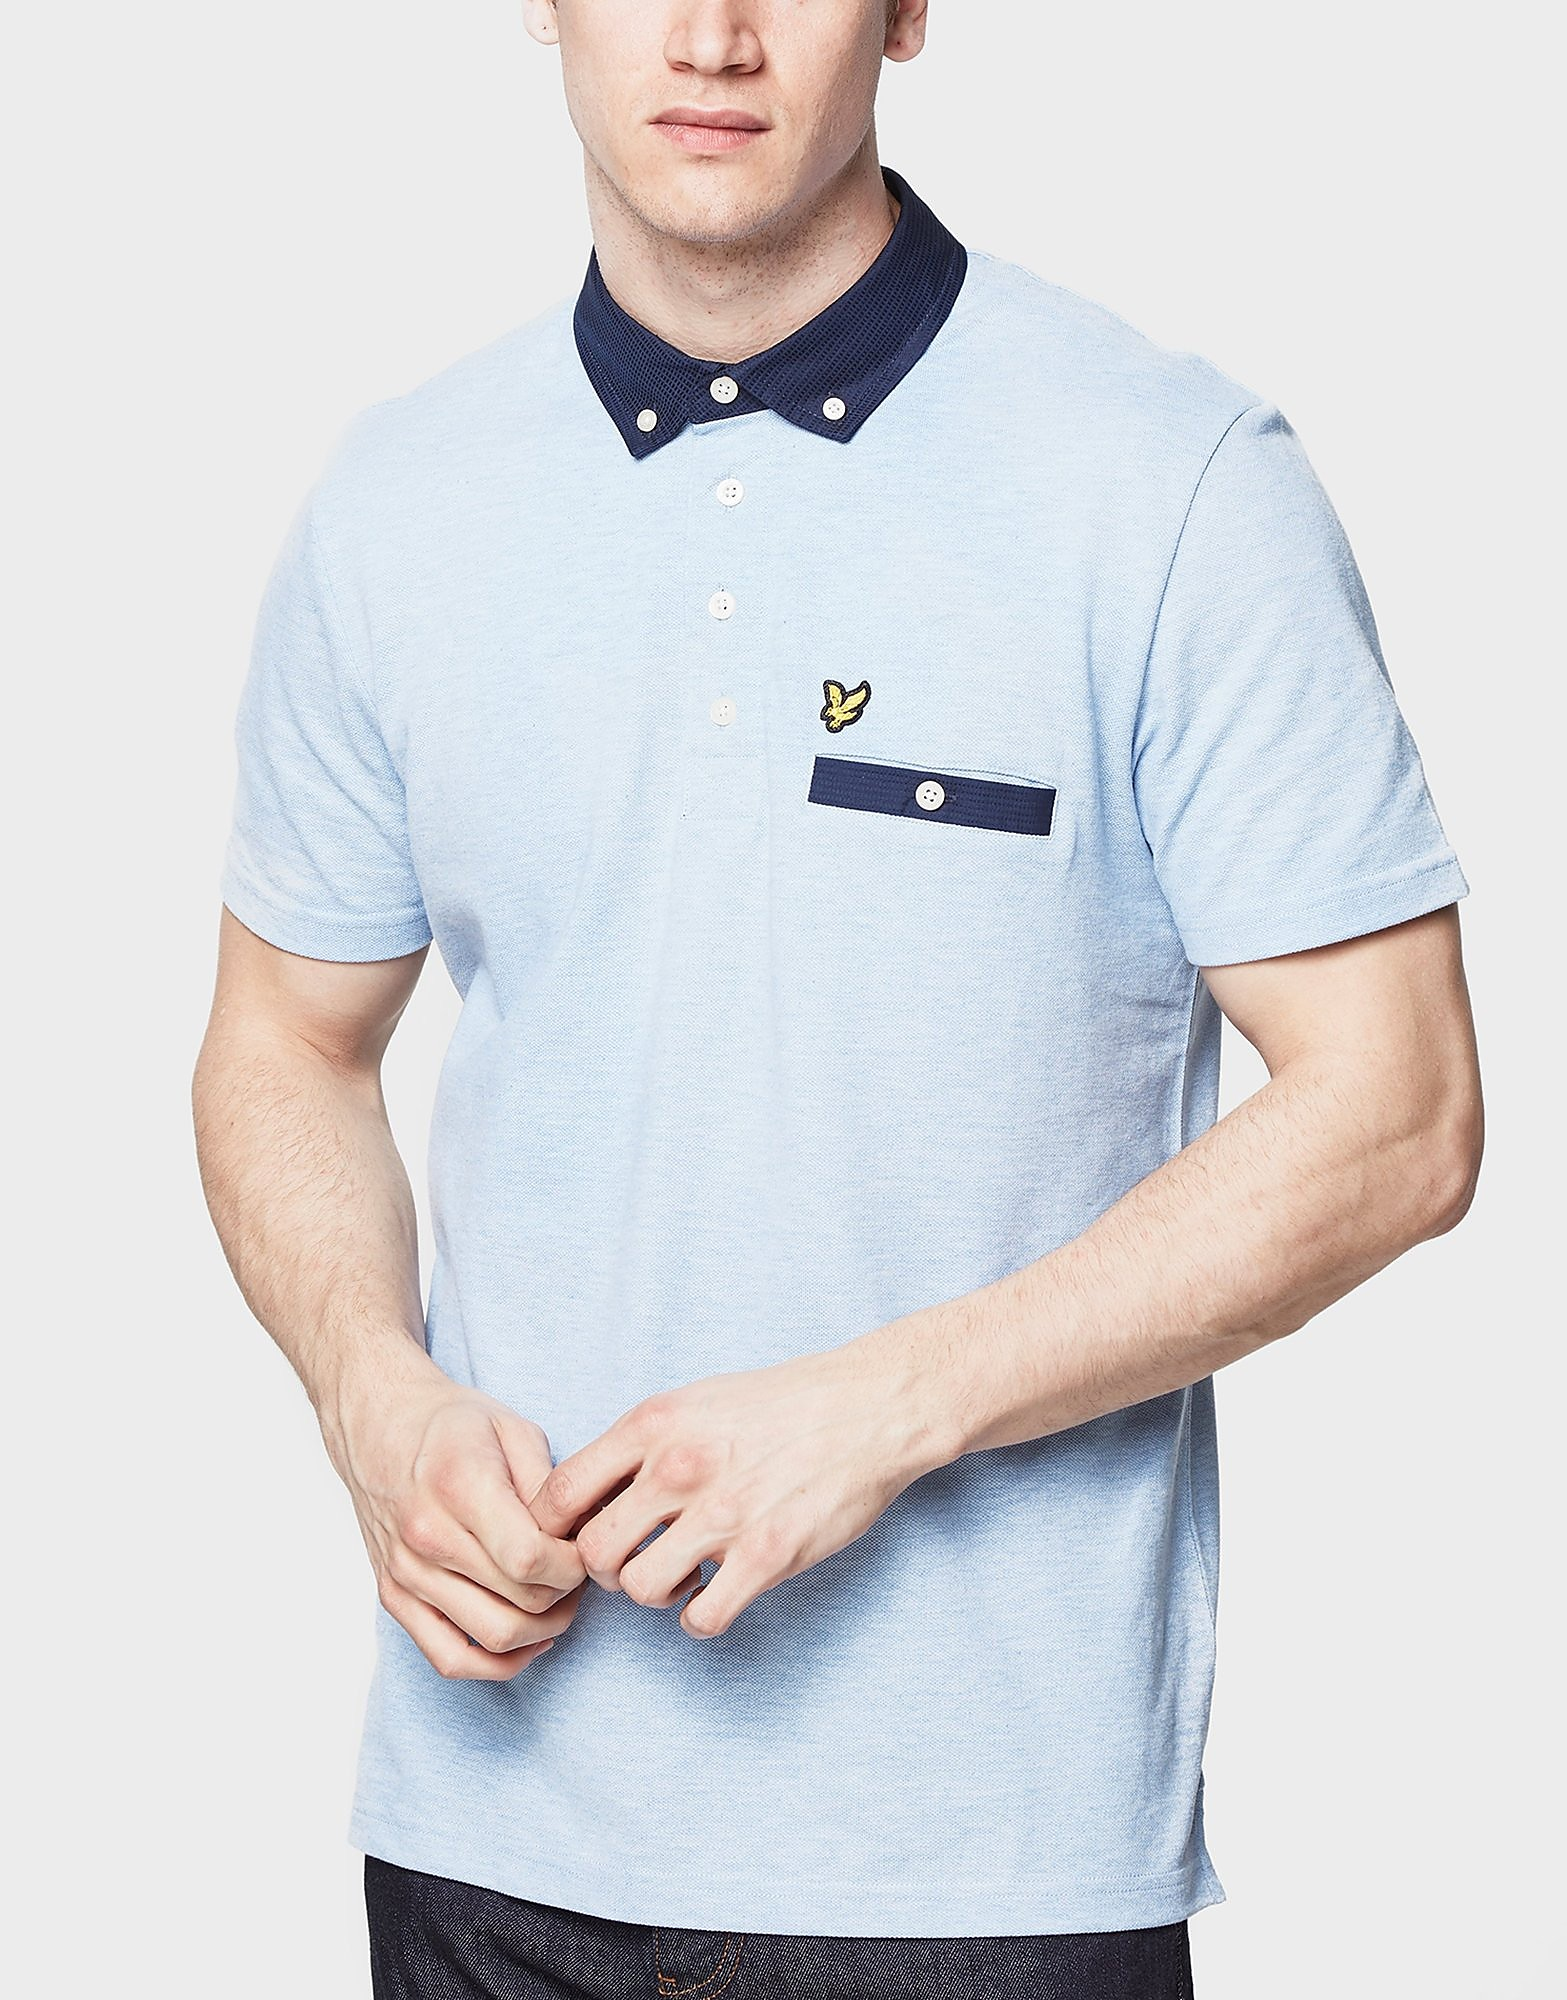 Lyle & Scott Pin Dot Woven Collar - Exclusive